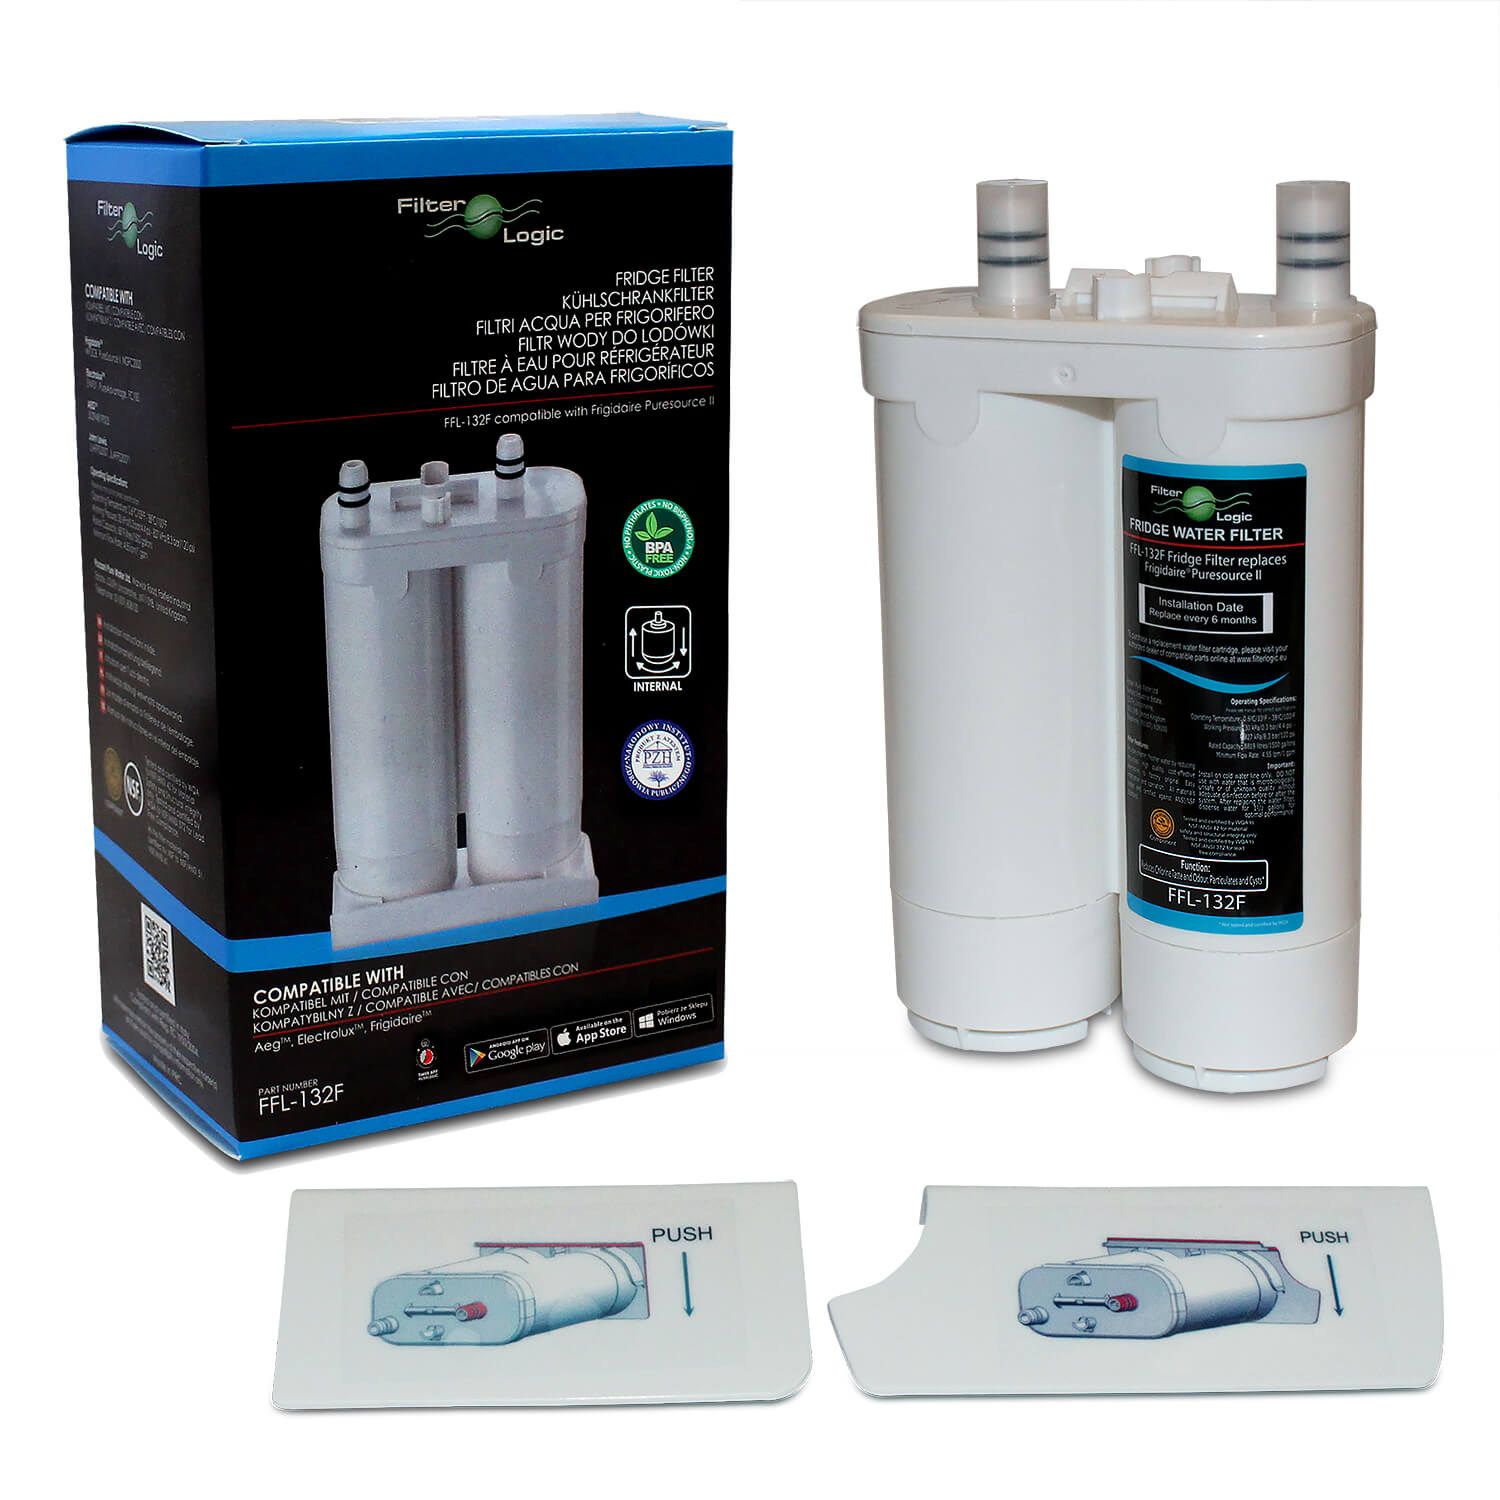 FilterLogic FFL-132F Ice & Water Filter to fit FC100 Frigidaire WF2CB PureSource 2 Fridge